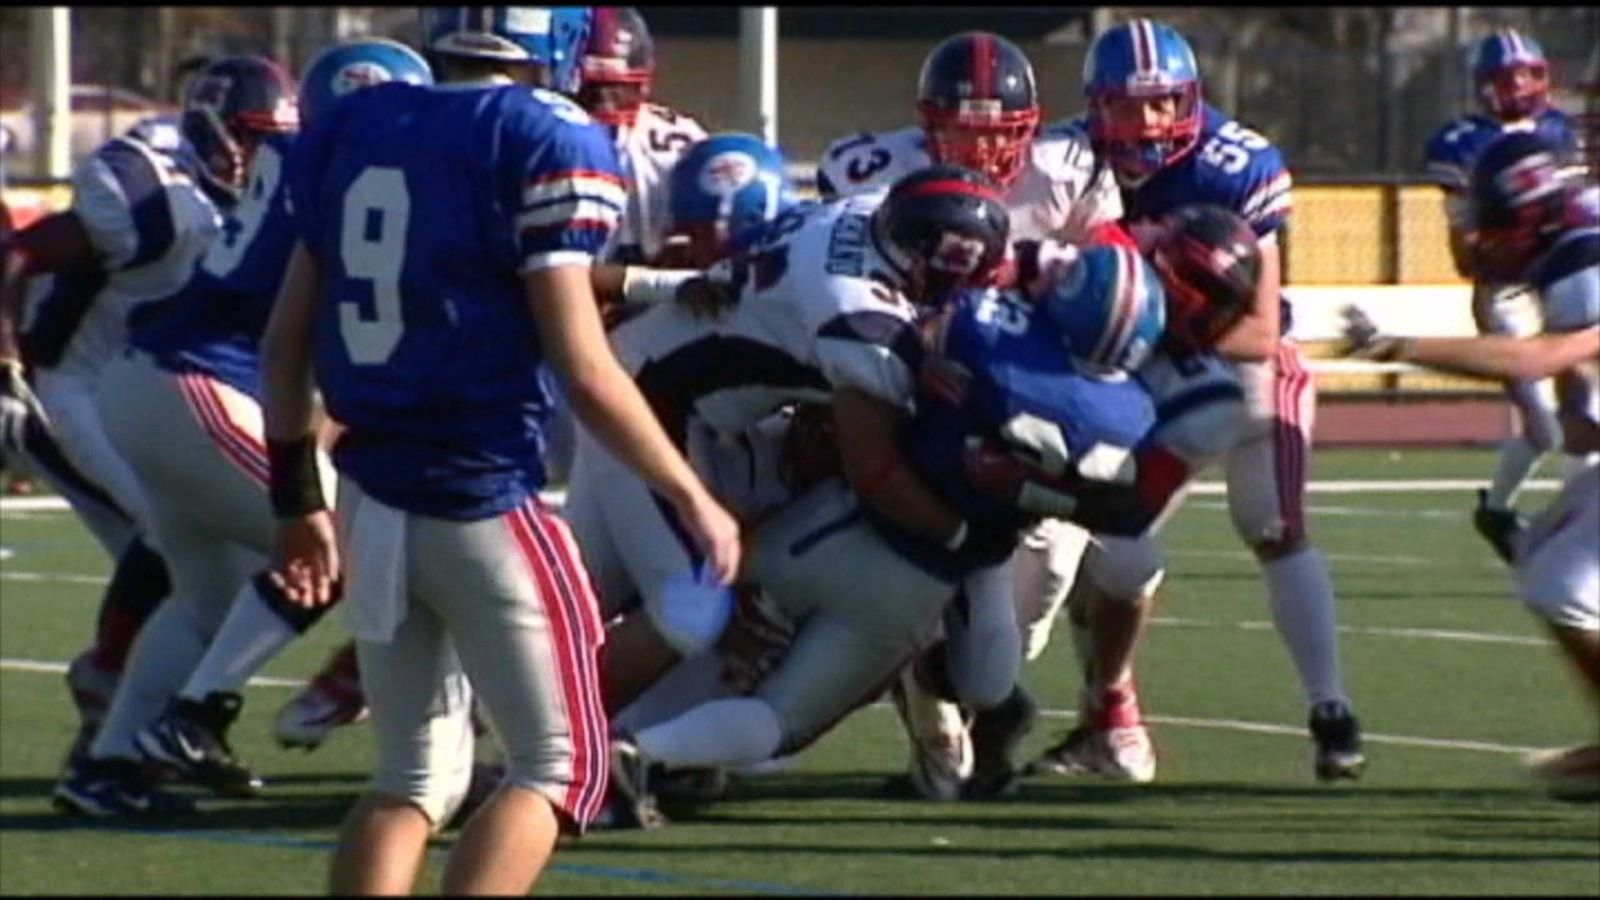 VIDEO: Will High School Football Be Banned?